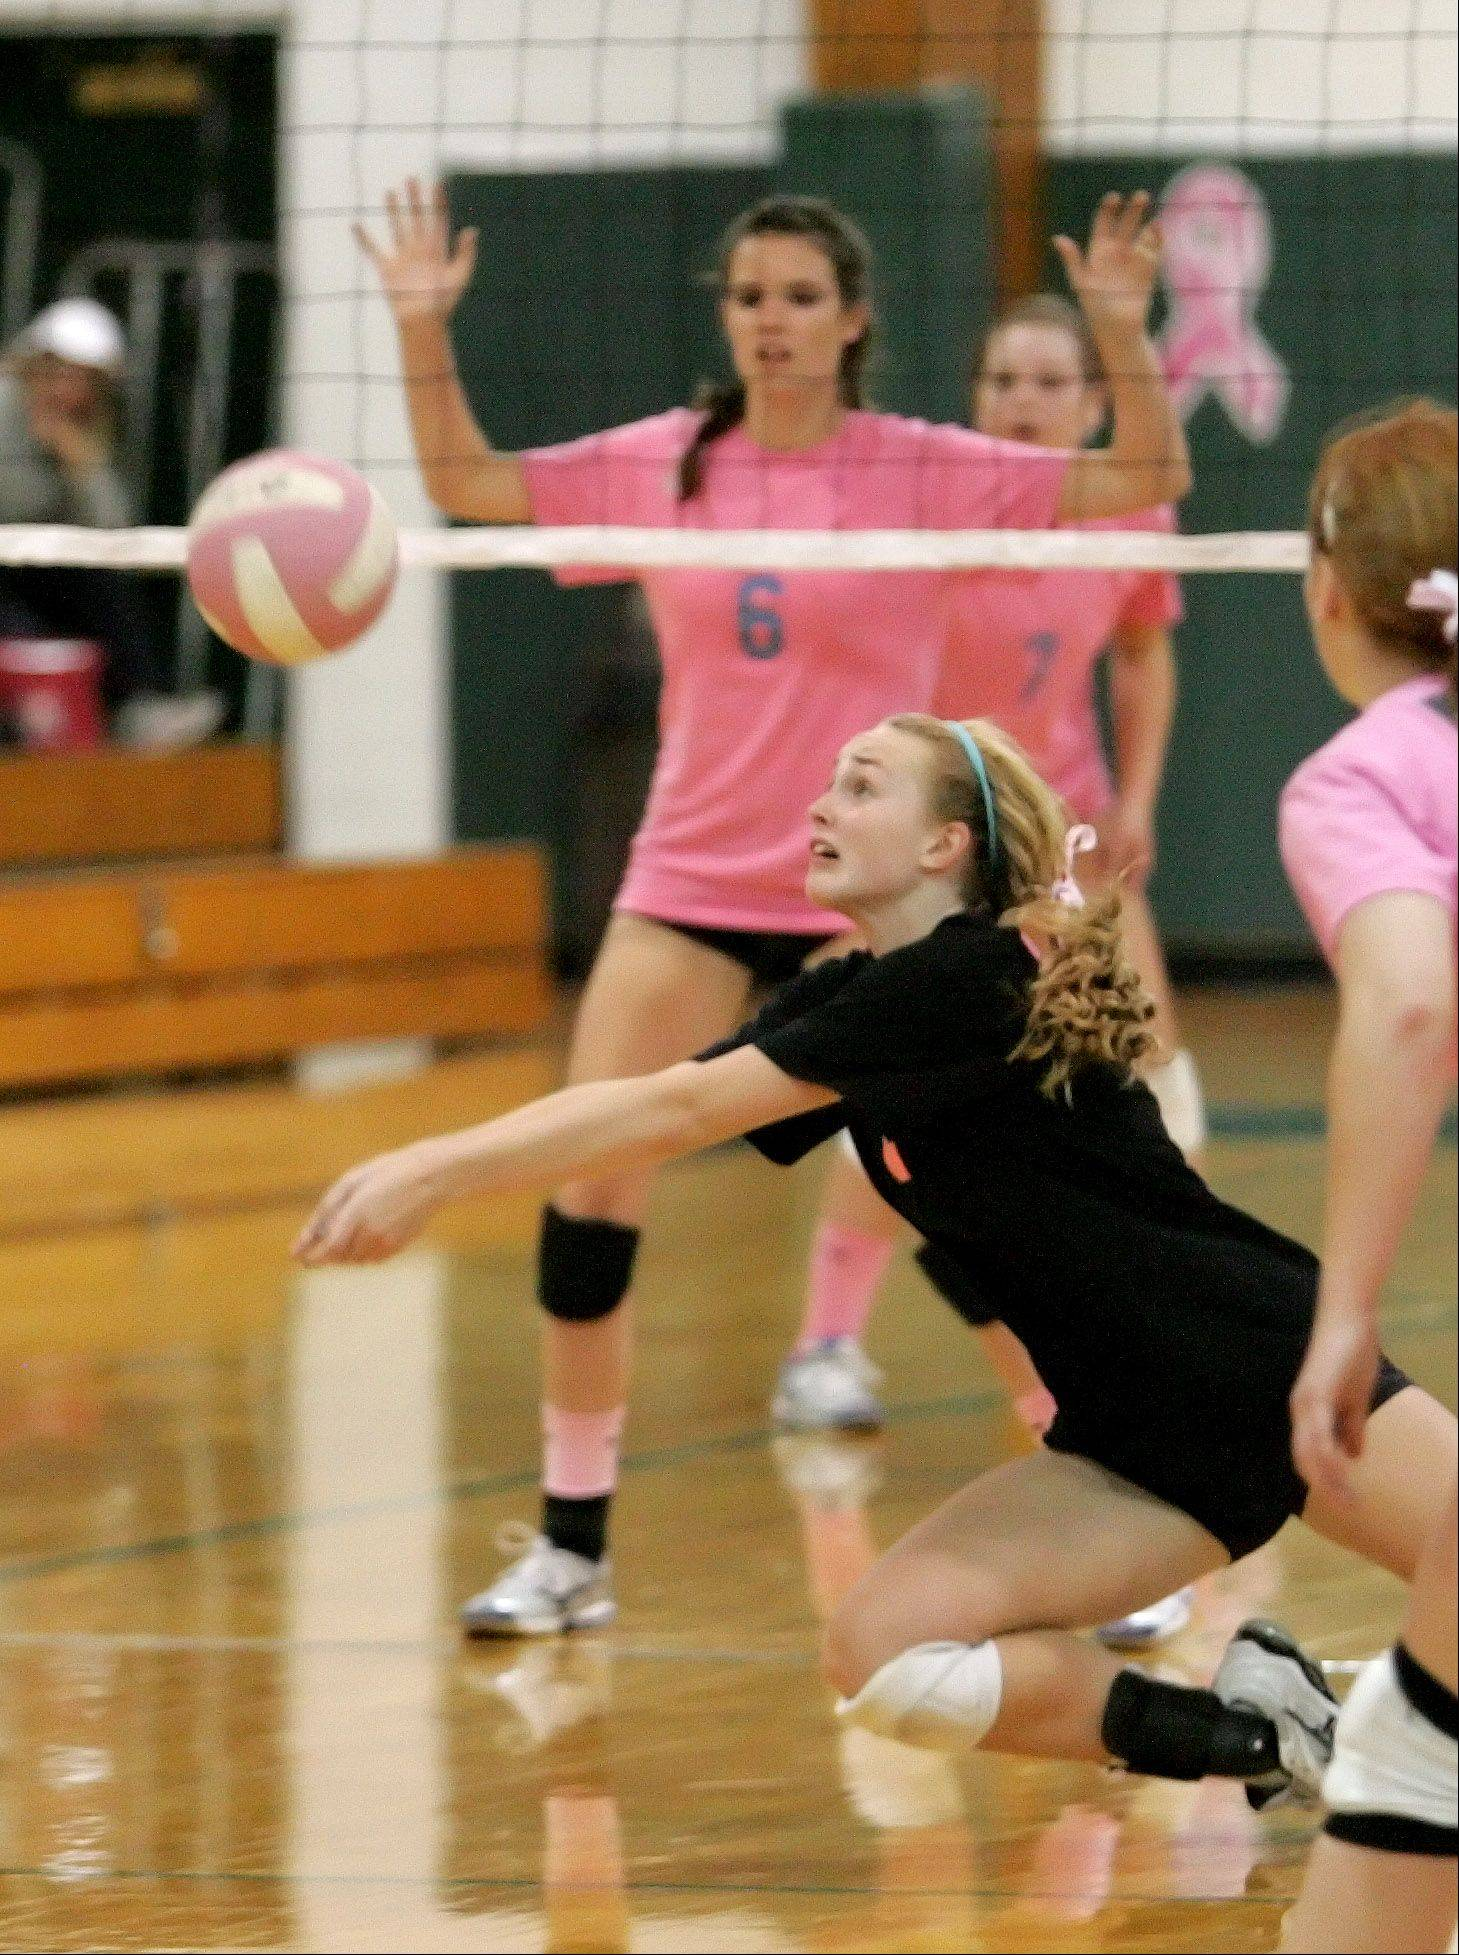 Caleigh Ryan, here diving for a ball against Willowbrook last season, has been central to Glenbard West's volleyball resurgence.